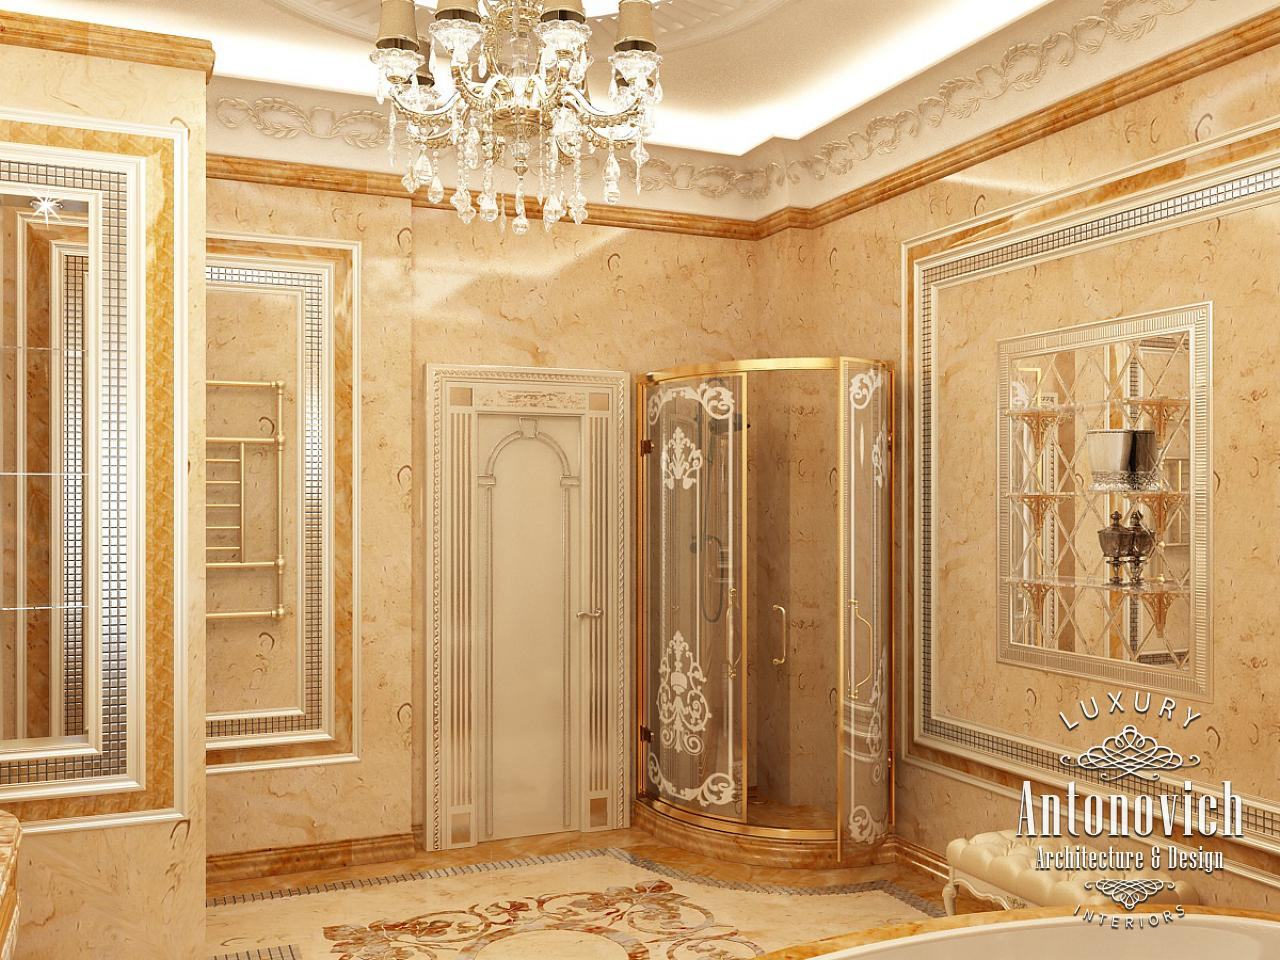 Luxury antonovich design uae bathroom design dubai for Bathroom design uae